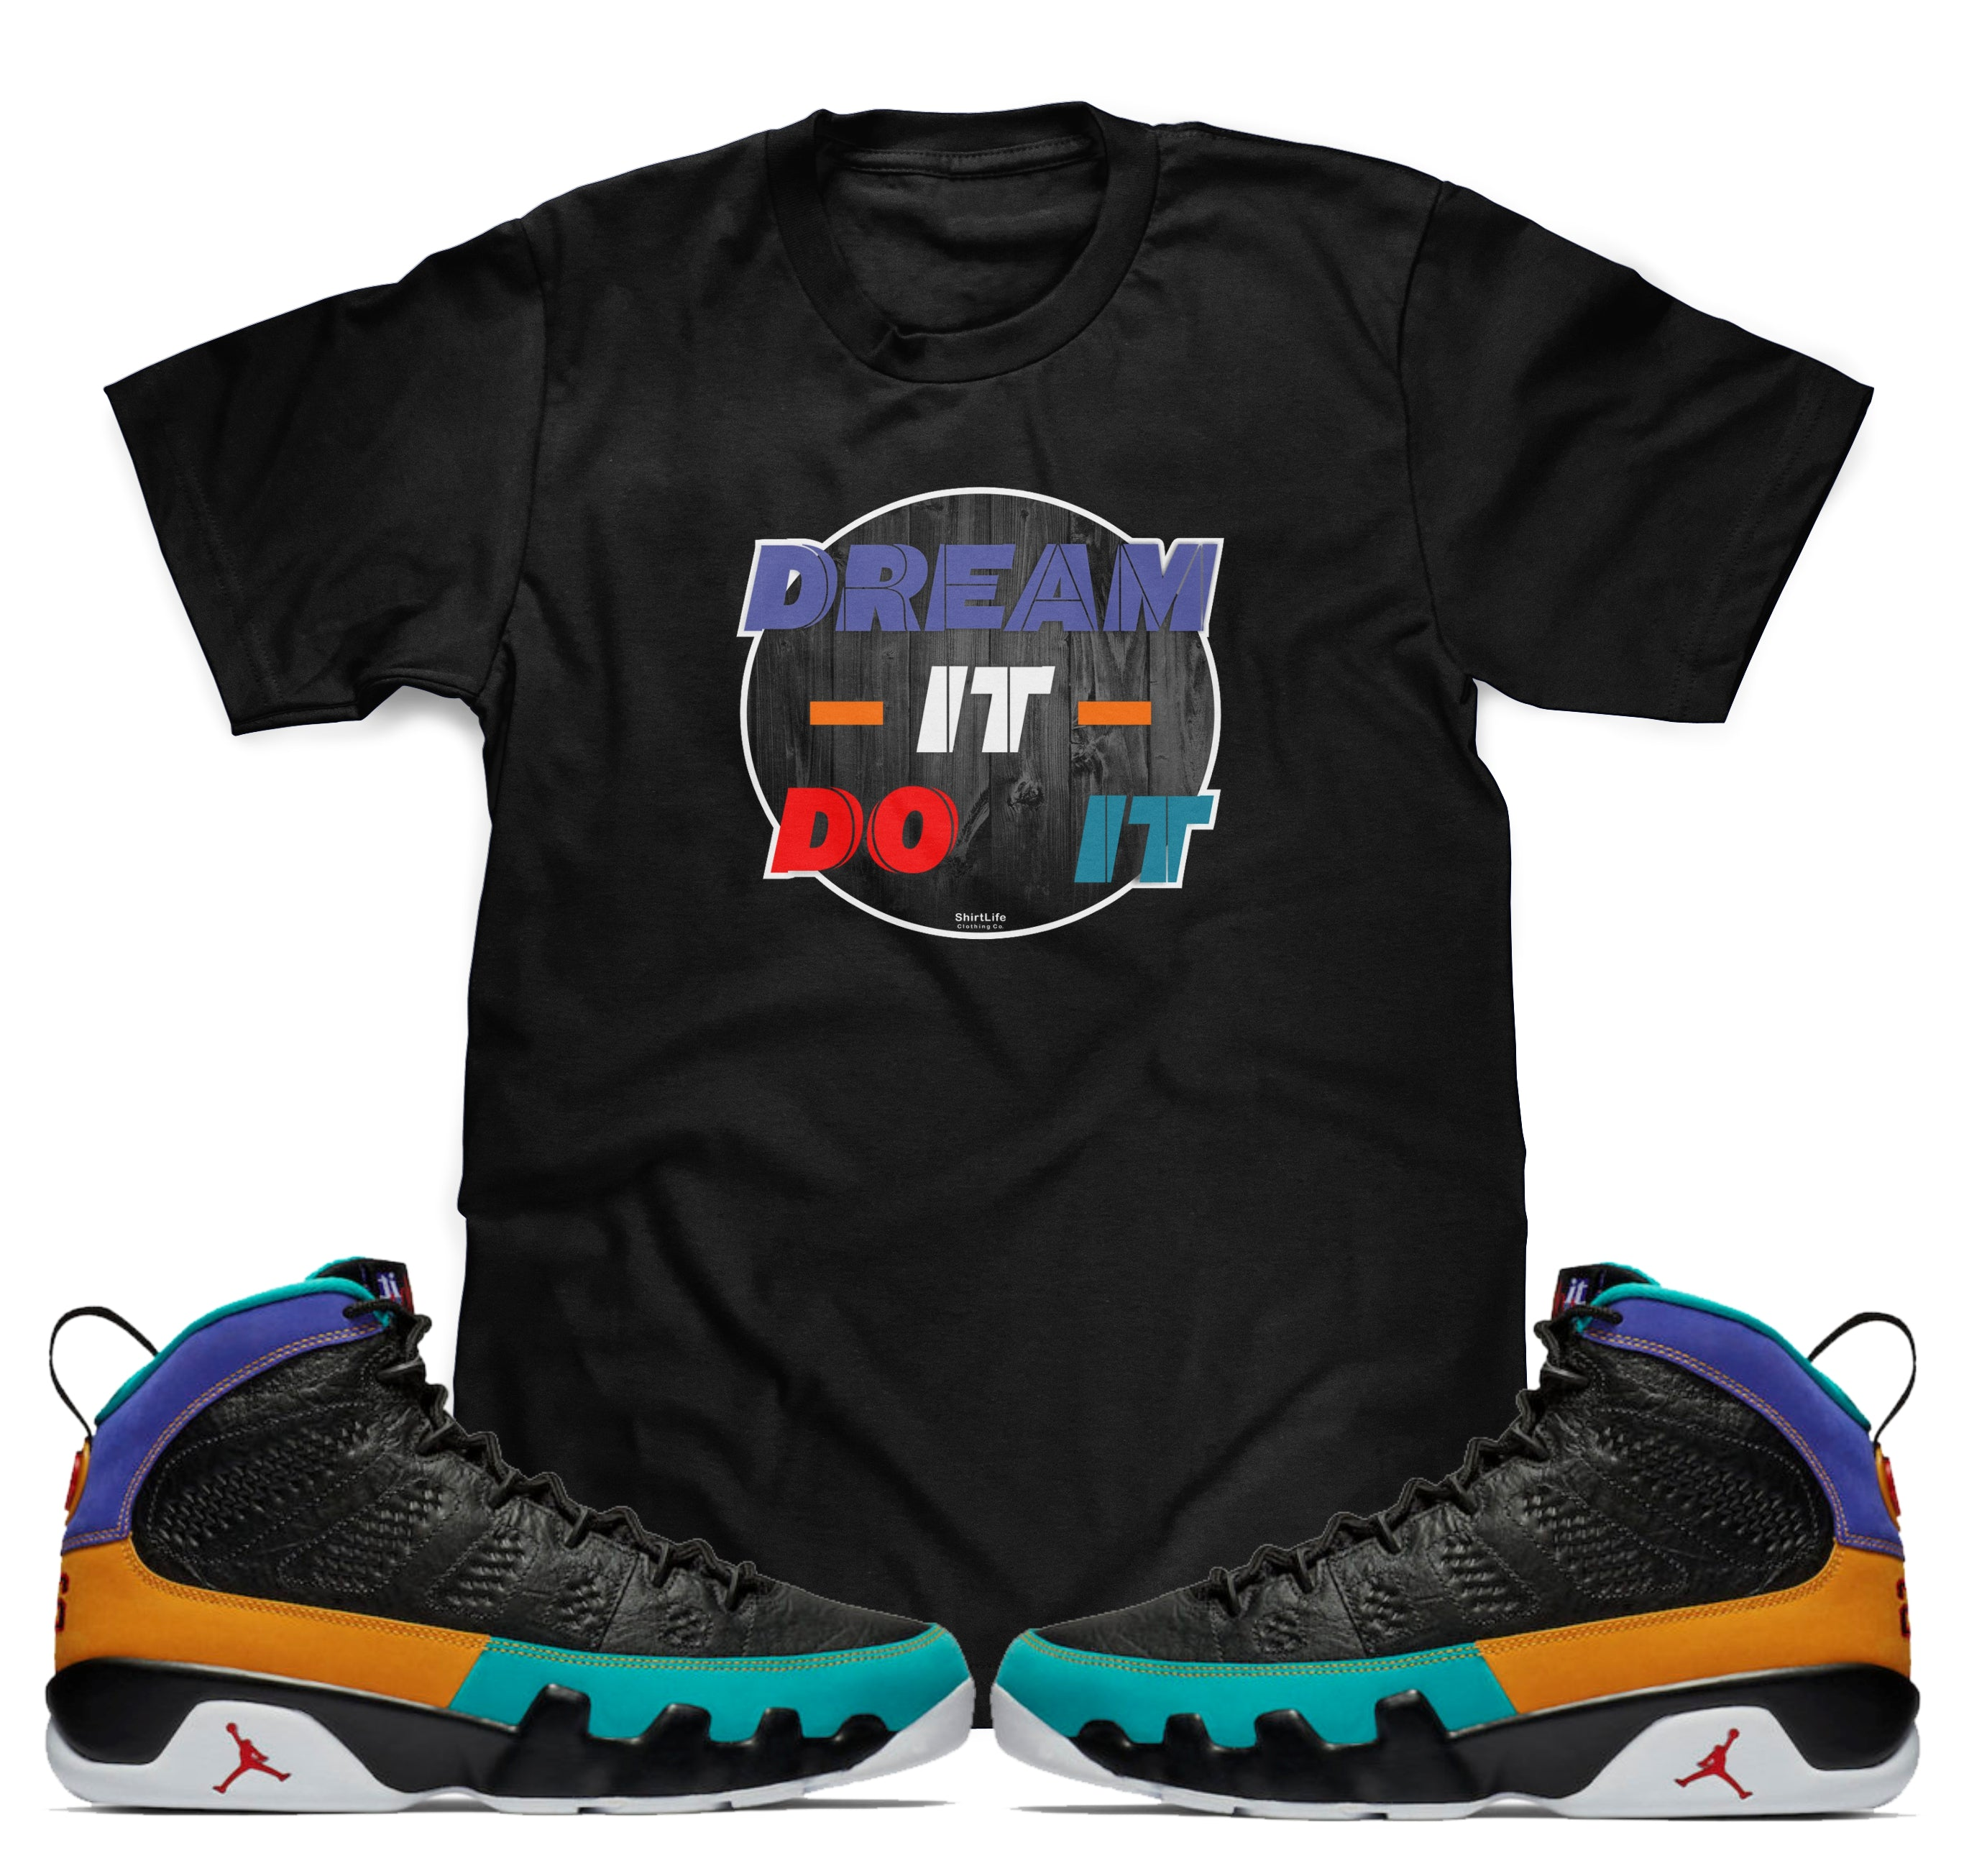 Dream it Do it Tee To Match Air Jordan Retro 9 Sneakers